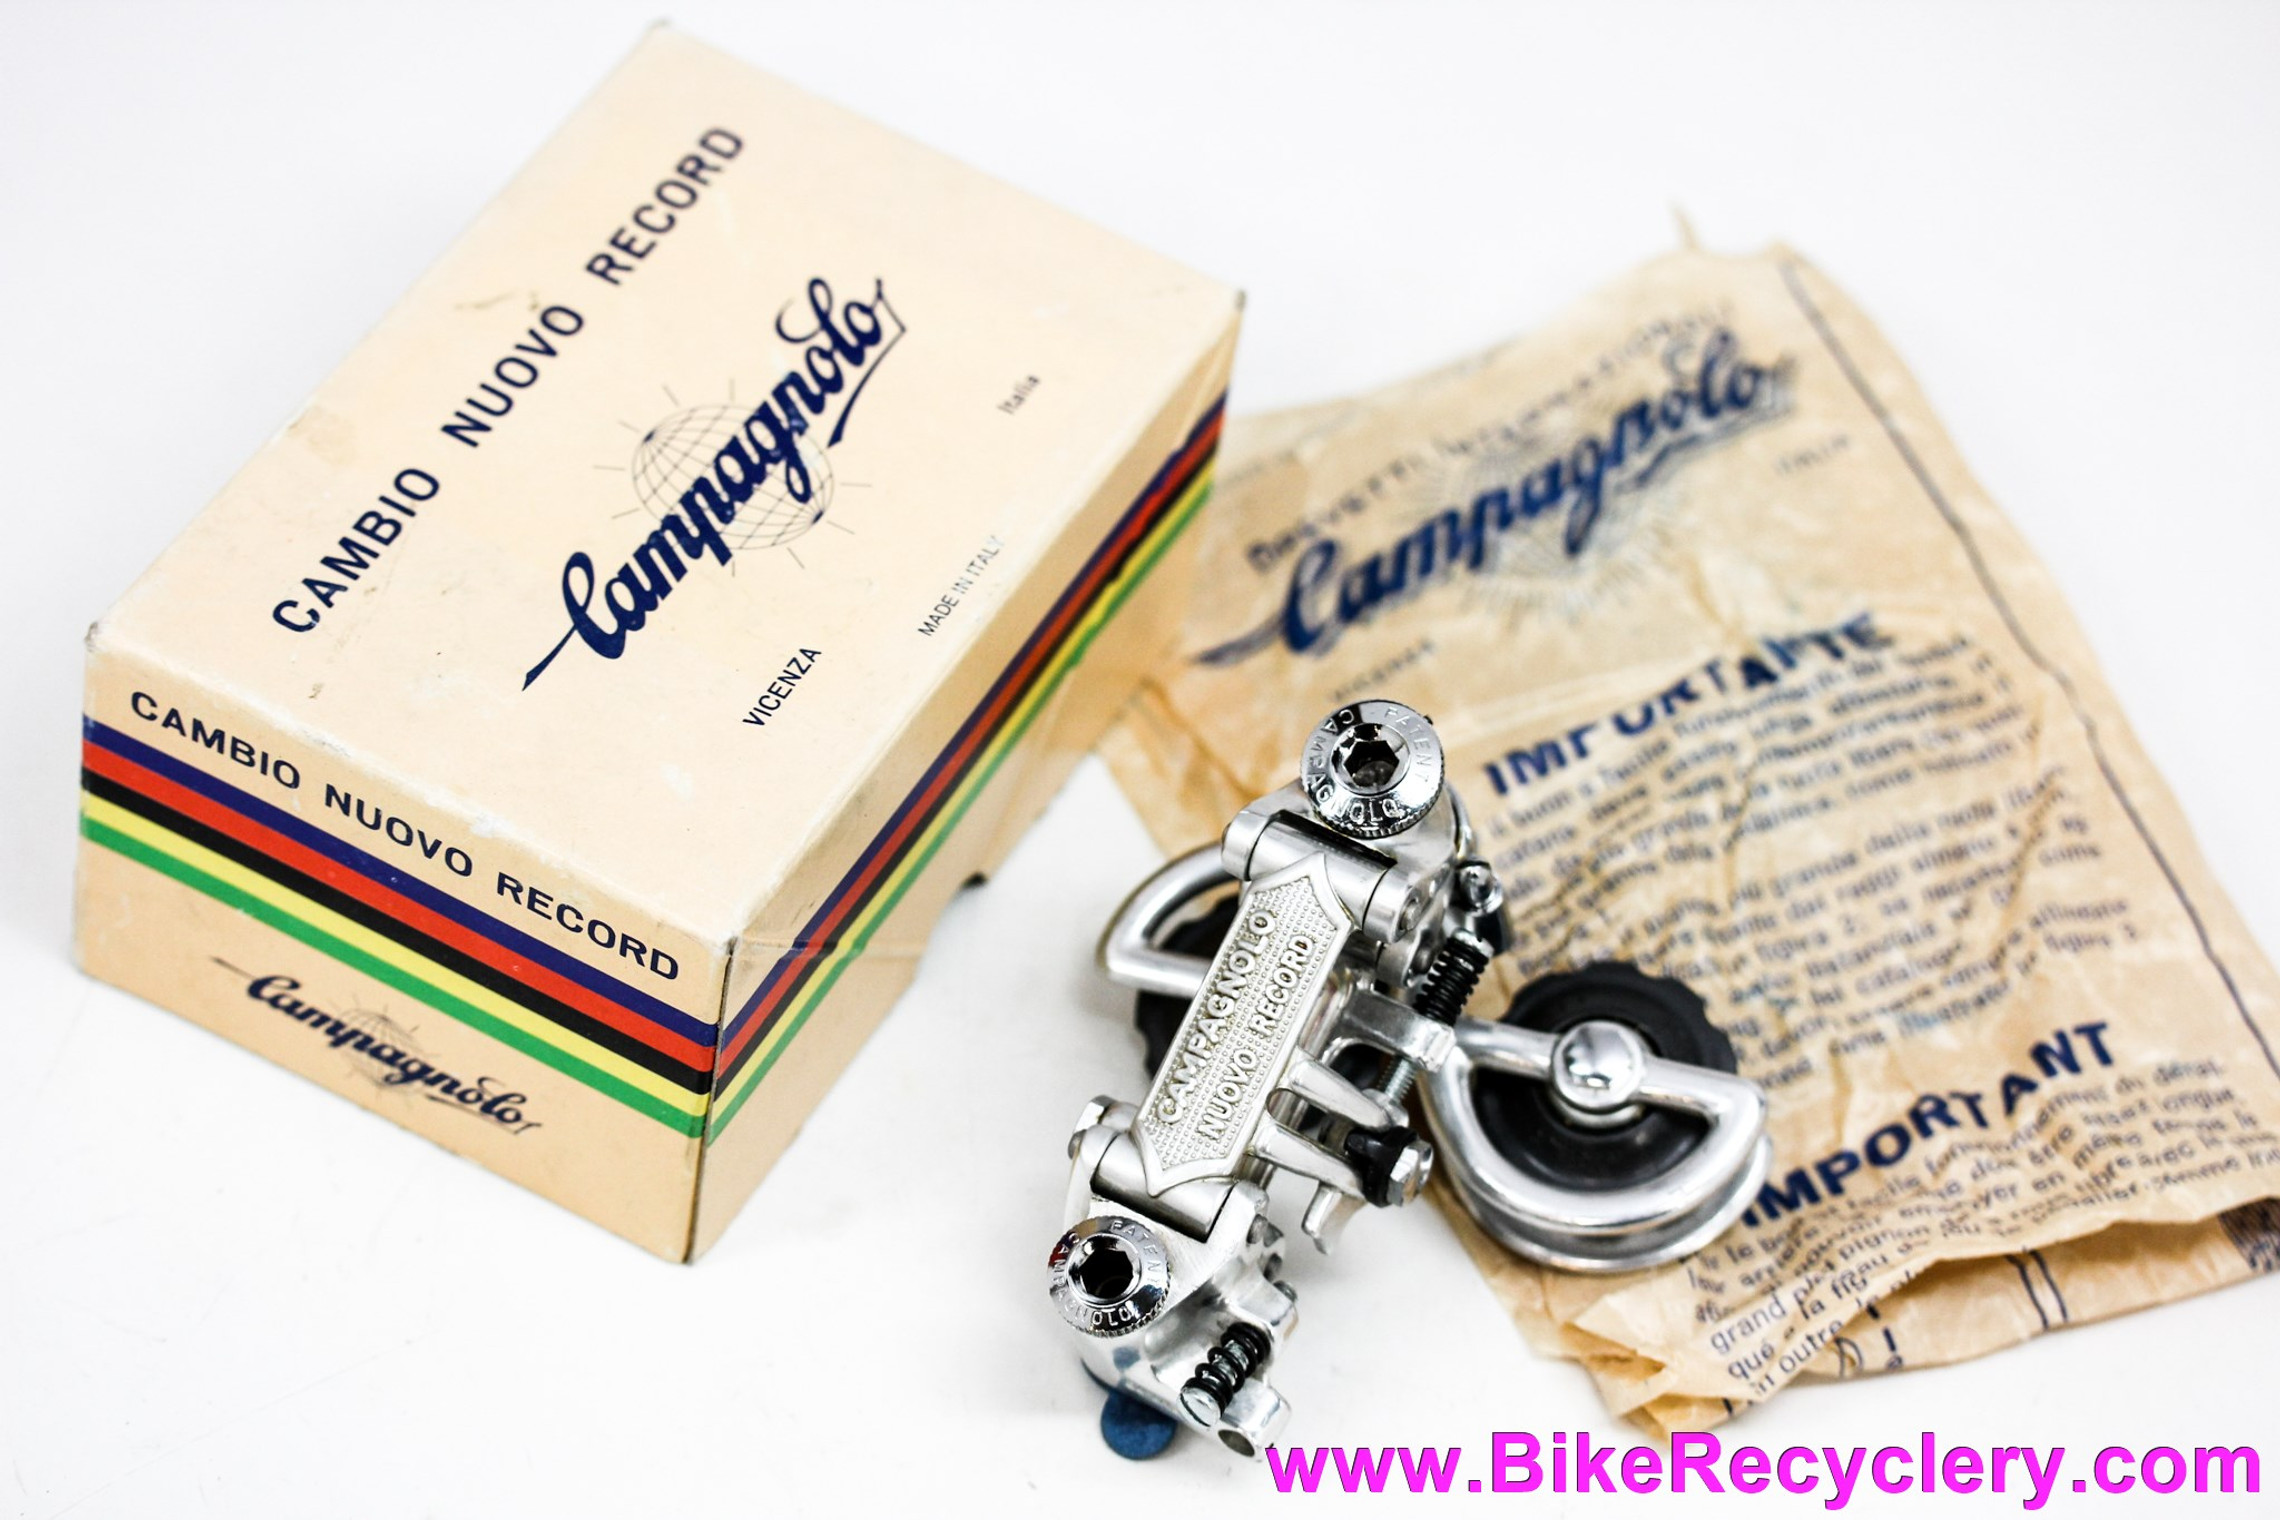 NIB/NOS Campagnolo Nuovo Record Rear Derailleur: Pat 1973 - Original 1970's Box & Wax Paper Instructions